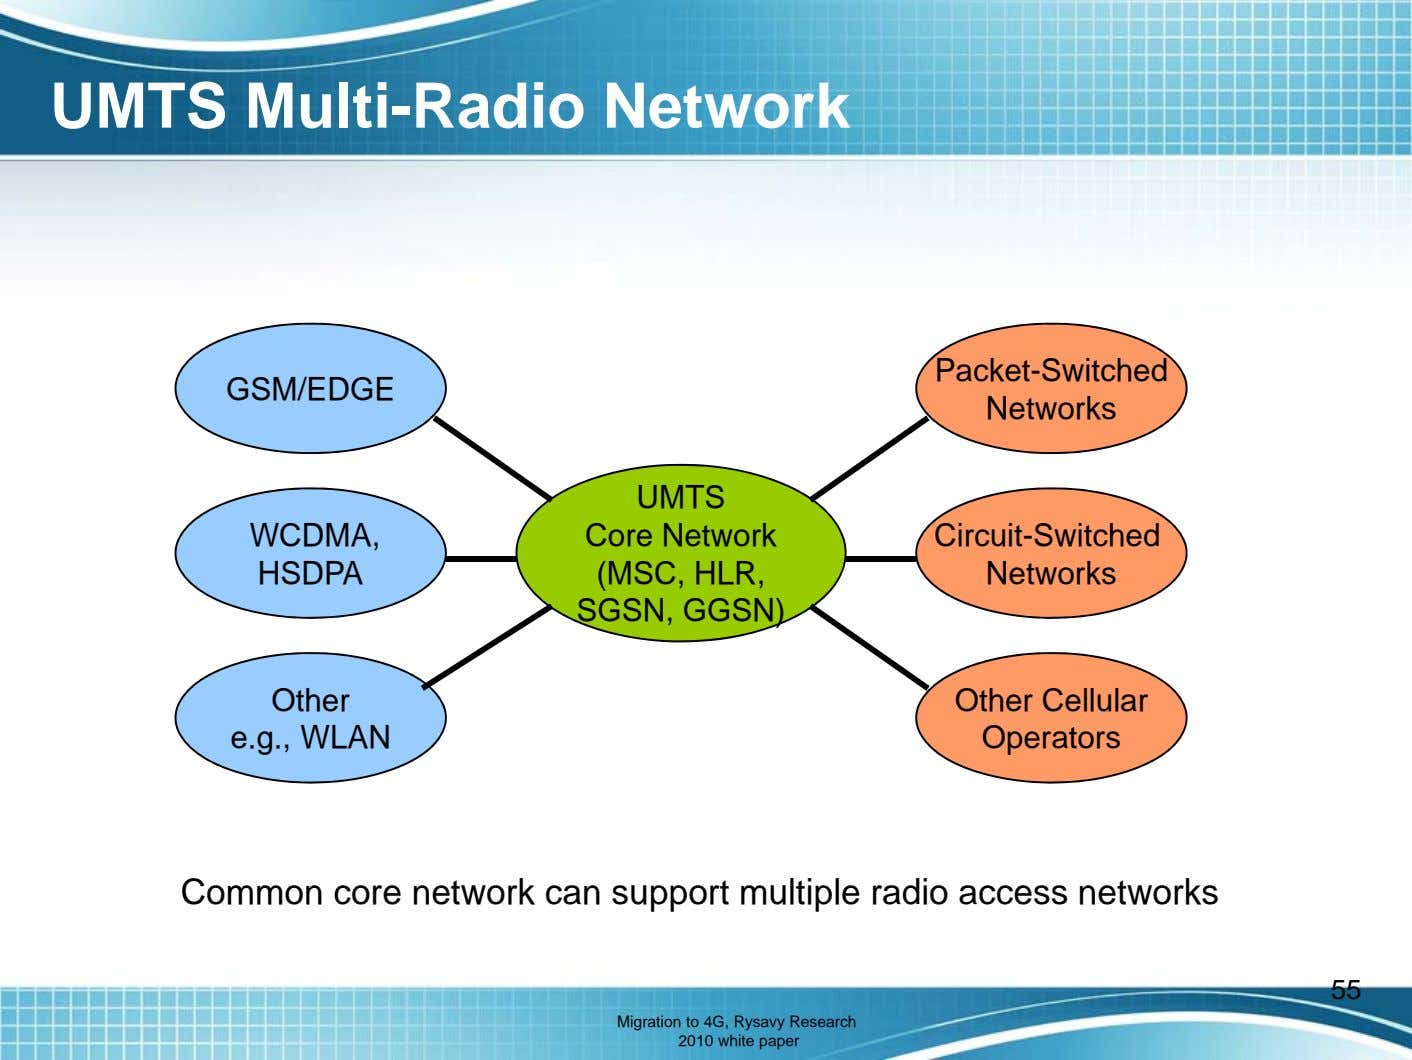 UMTS Multi-Radio Network Packet-Switched GSM/EDGE Networks WCDMA, UMTS Core Network (MSC, HLR, SGSN, GGSN)